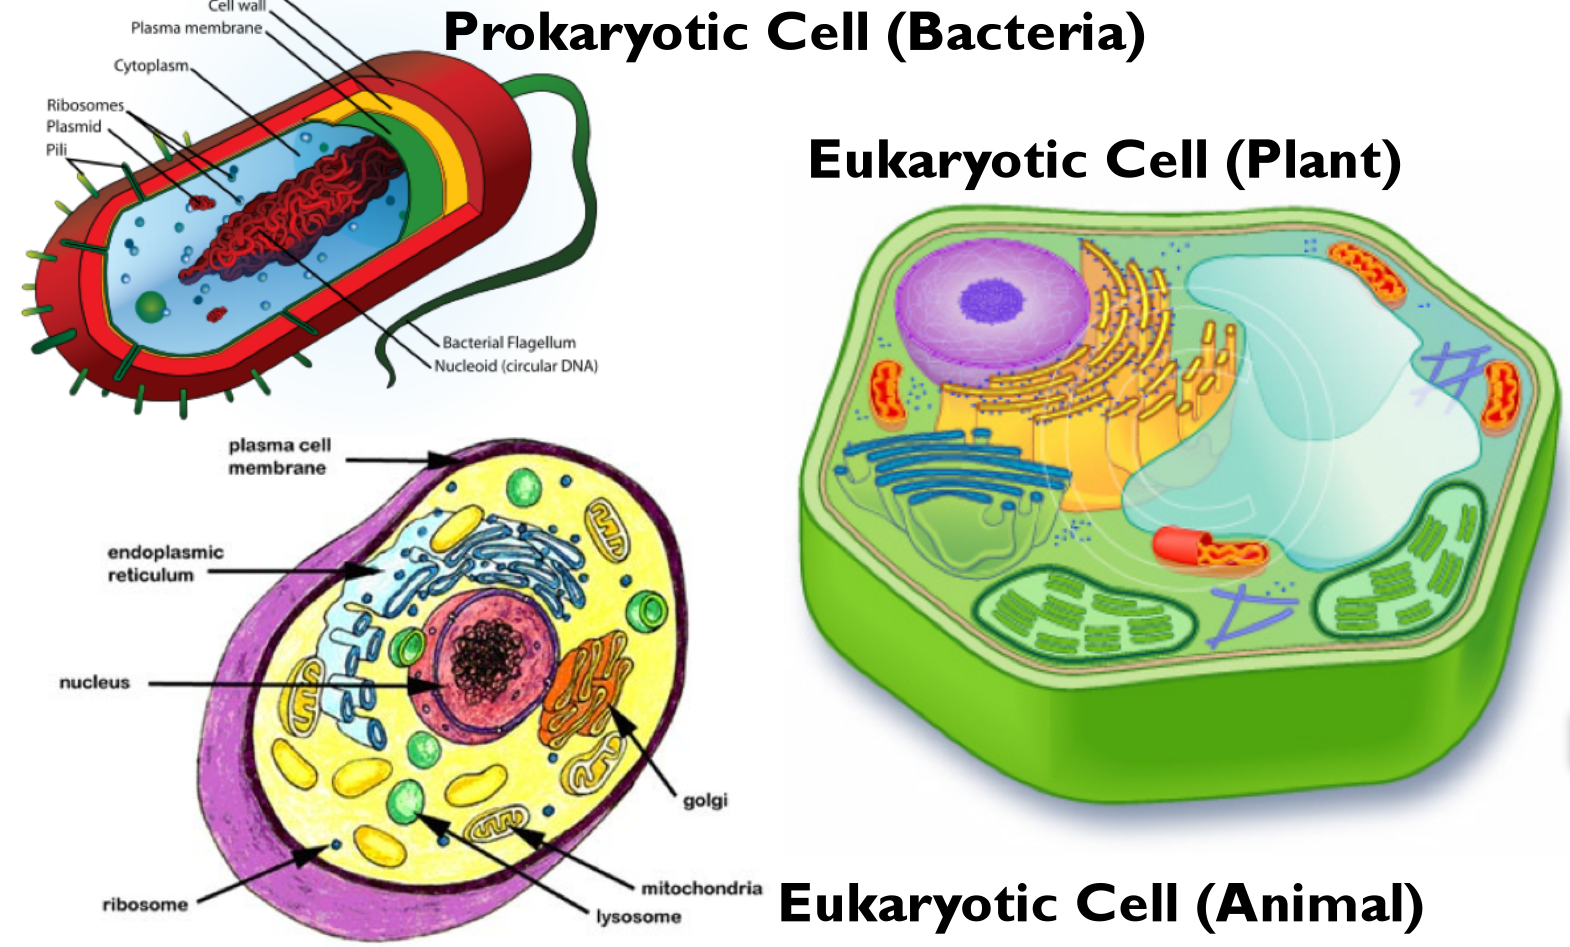 cell structures prokaryotic eukaryotic cells essay How eukaryotic organisms came into between the structures of prokaryote and eukaryotic cells for in currently existing prokaryotic cells.